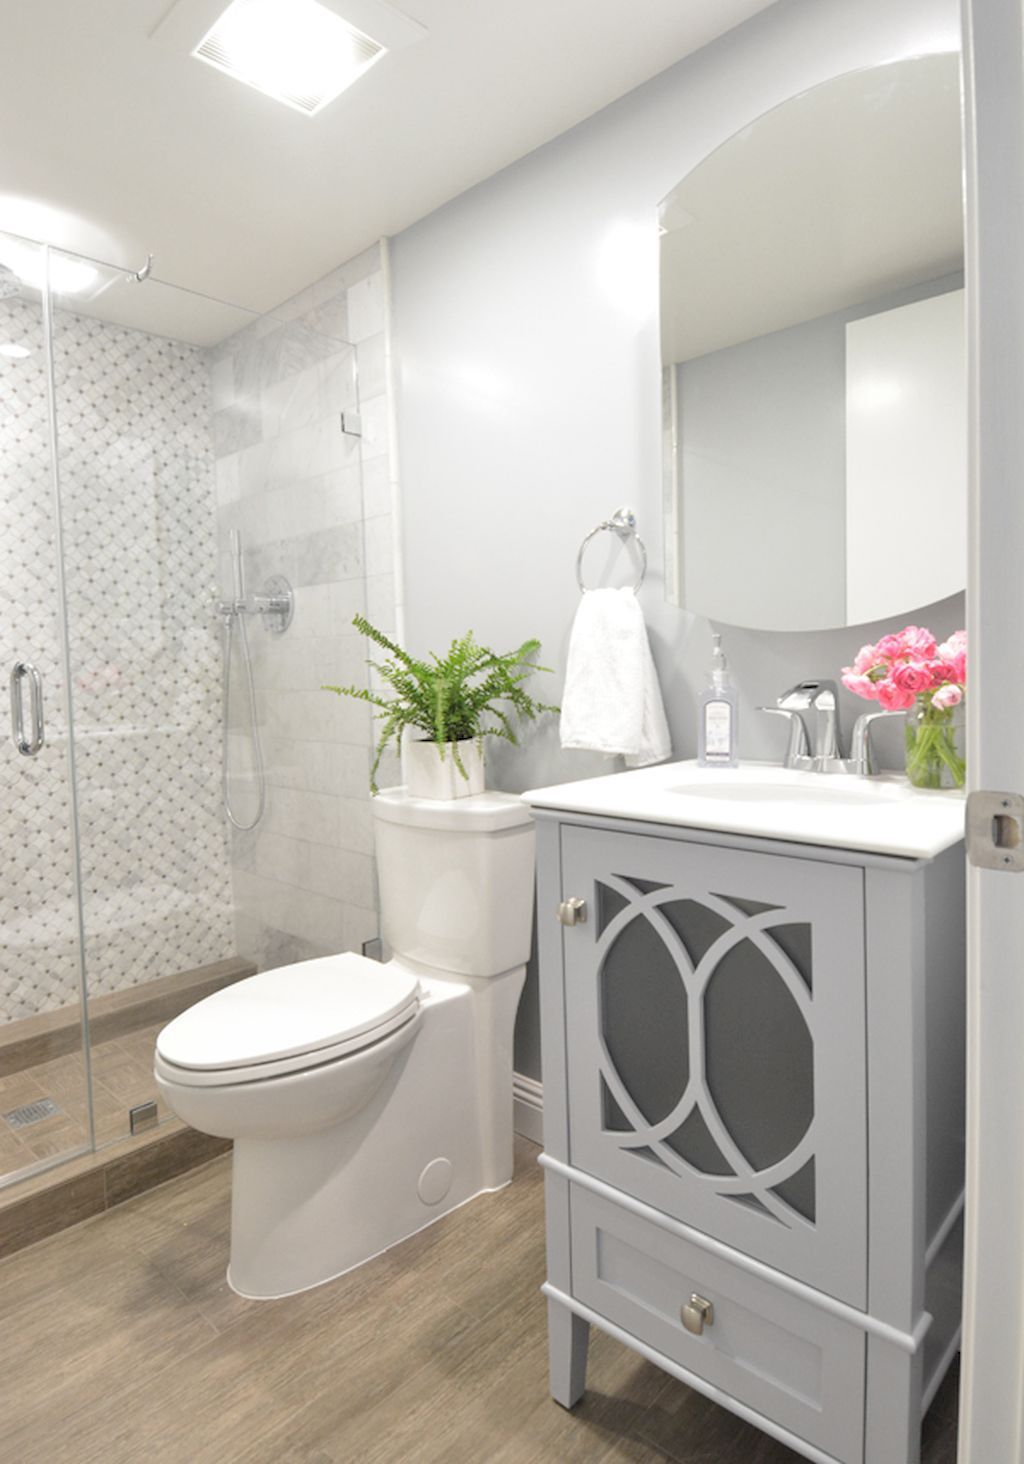 Cool small master bathroom remodel ideas (8) - HomEastern.com